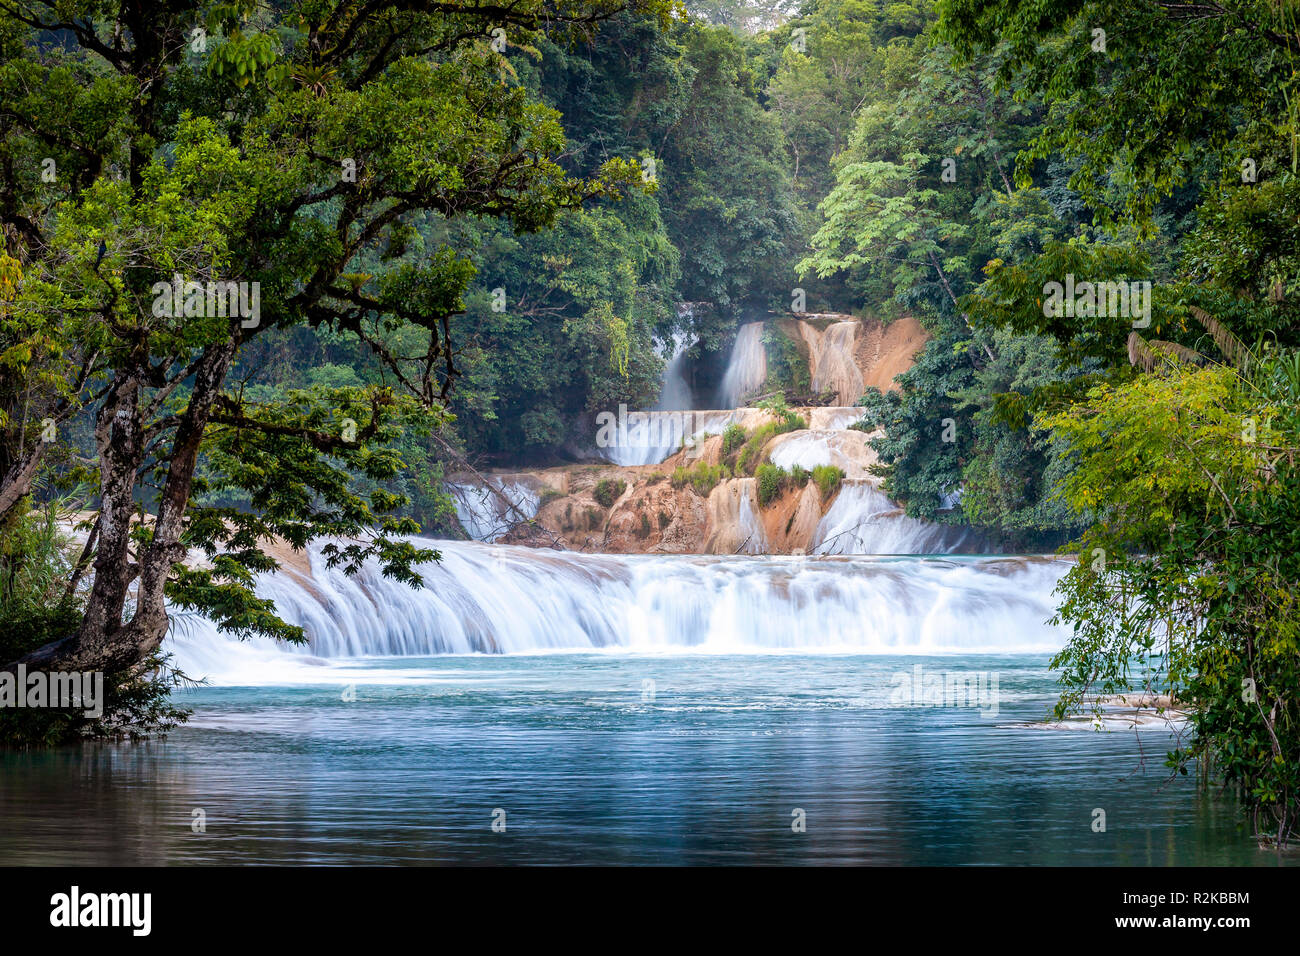 Upper series of falls at Agua Azul, Chiapas, Mexico. - Stock Image